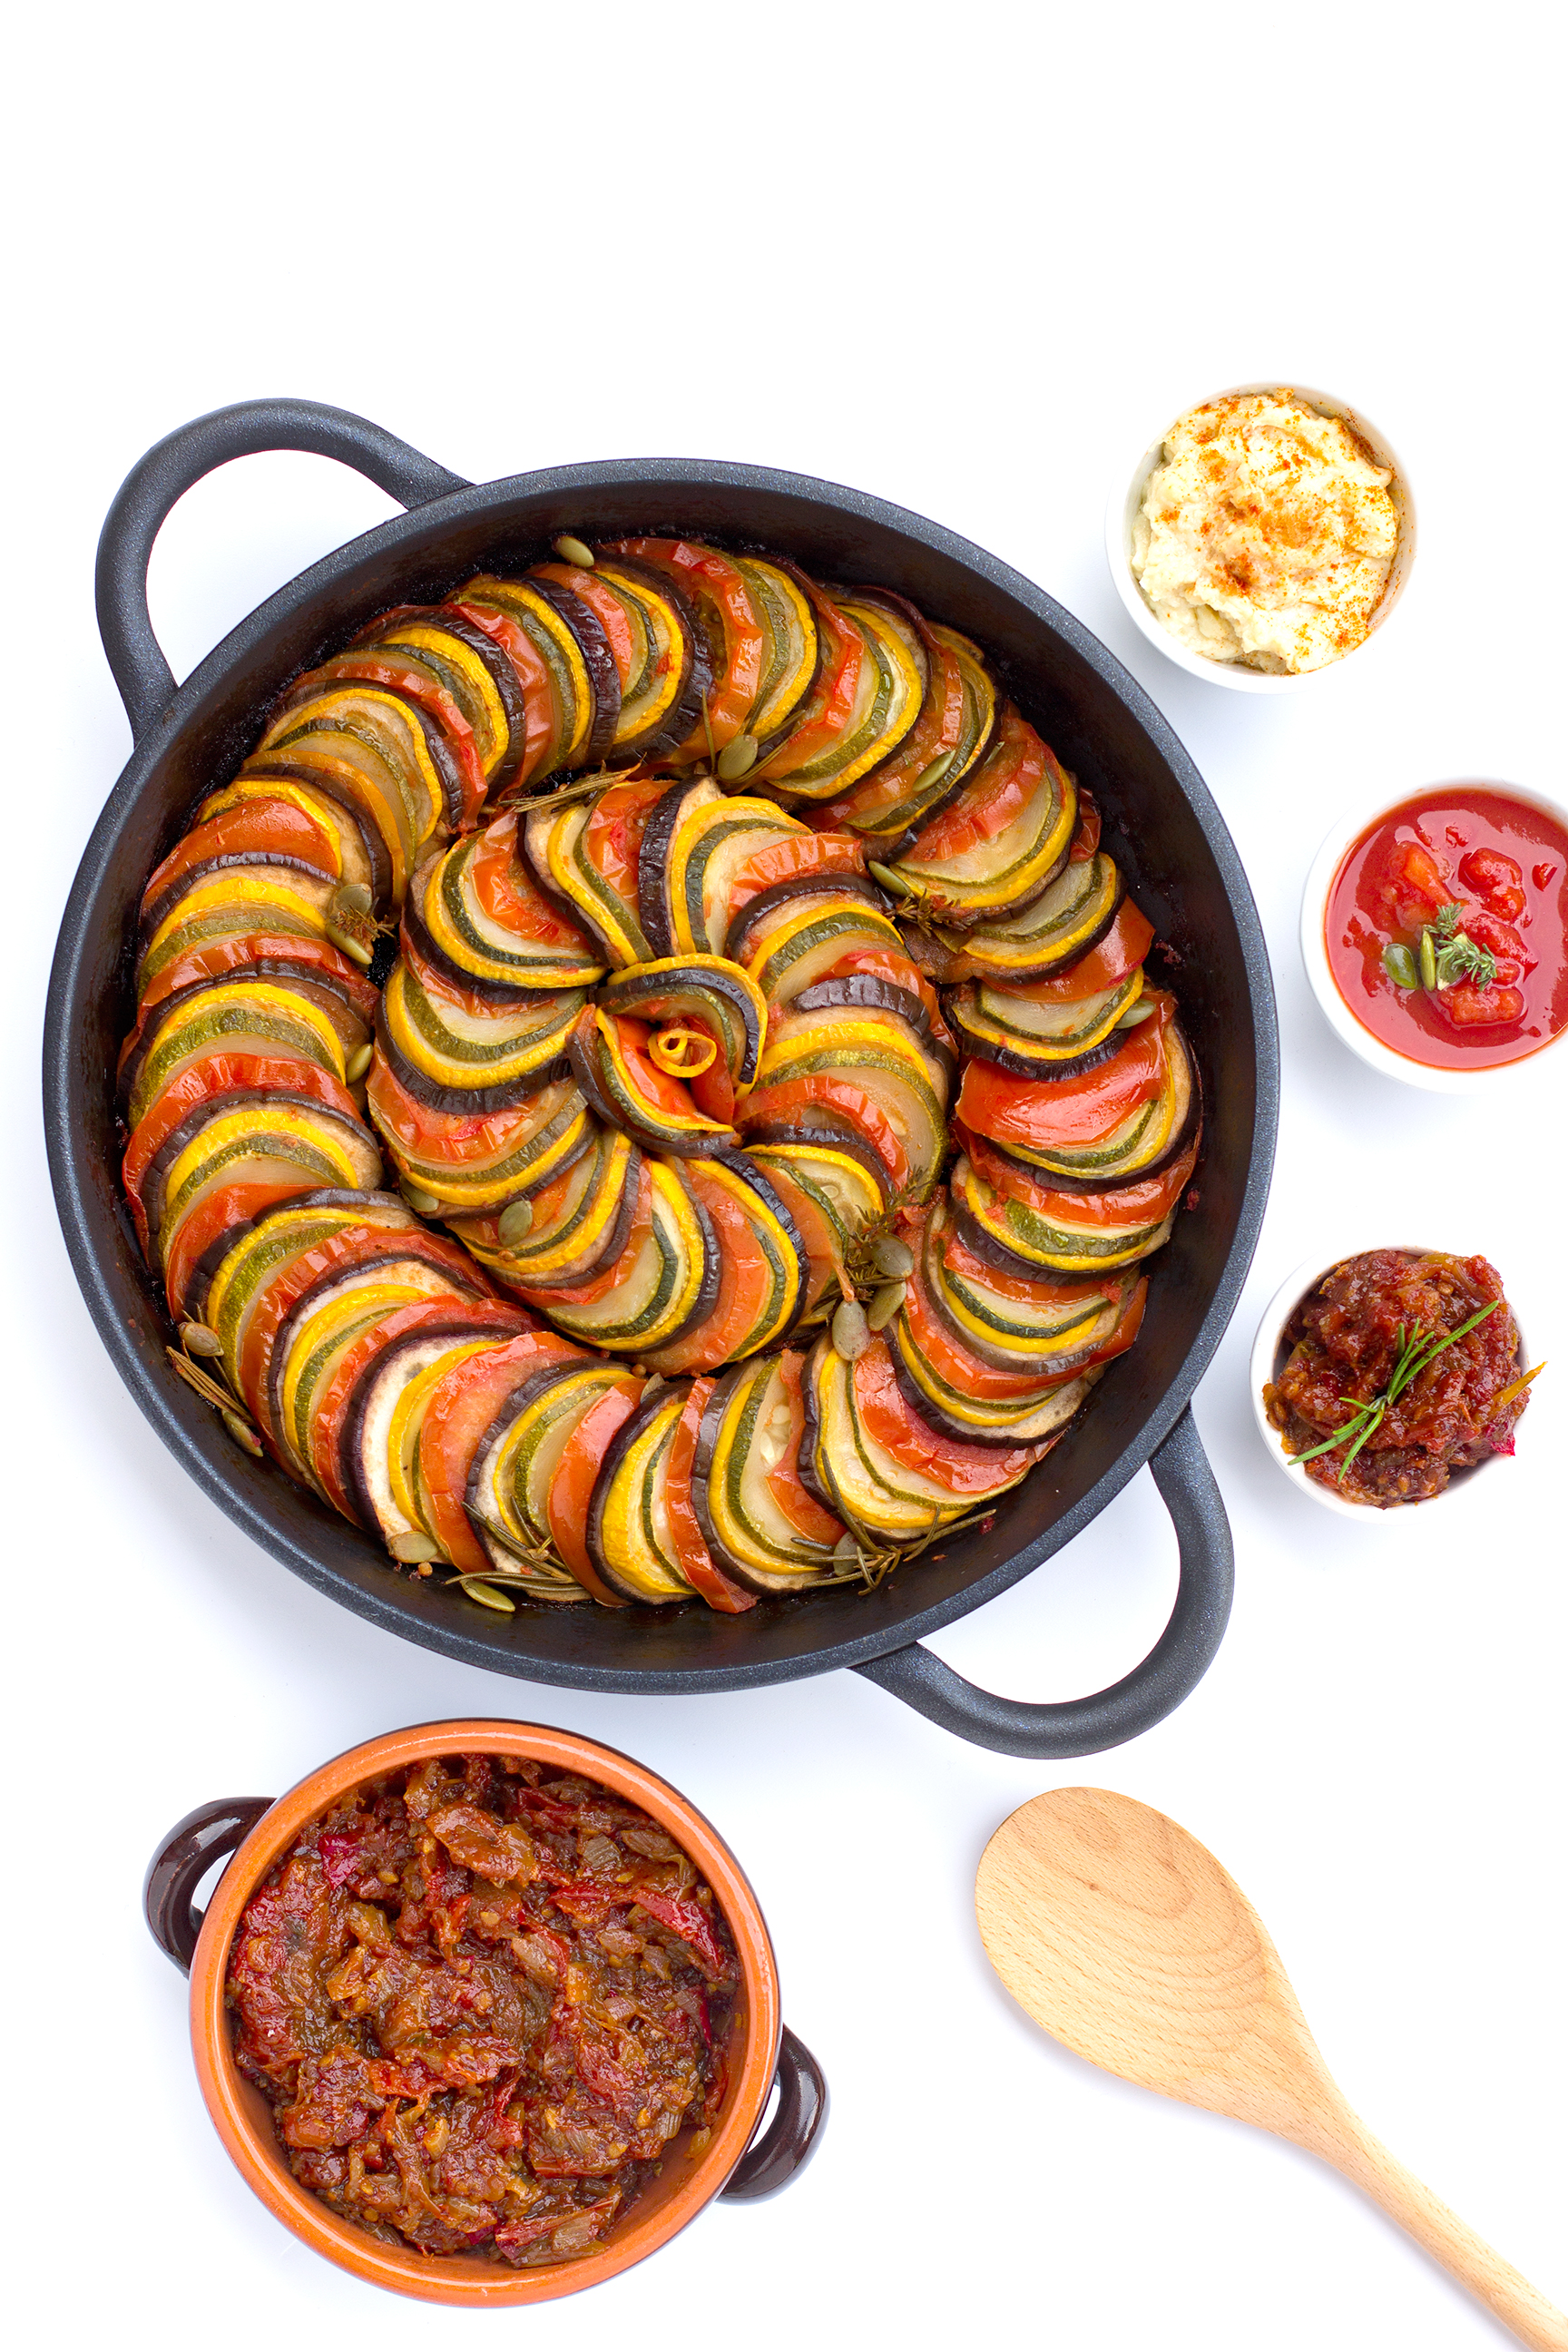 RATATOUILLE di VERDURE in padella // sana, dietetica, facile e veloce // yummy #vegan #senzaglutine |ONE-PAN RATATOUILLE healthy, easy and delicious tian // #veggies #vegan #glutenfree